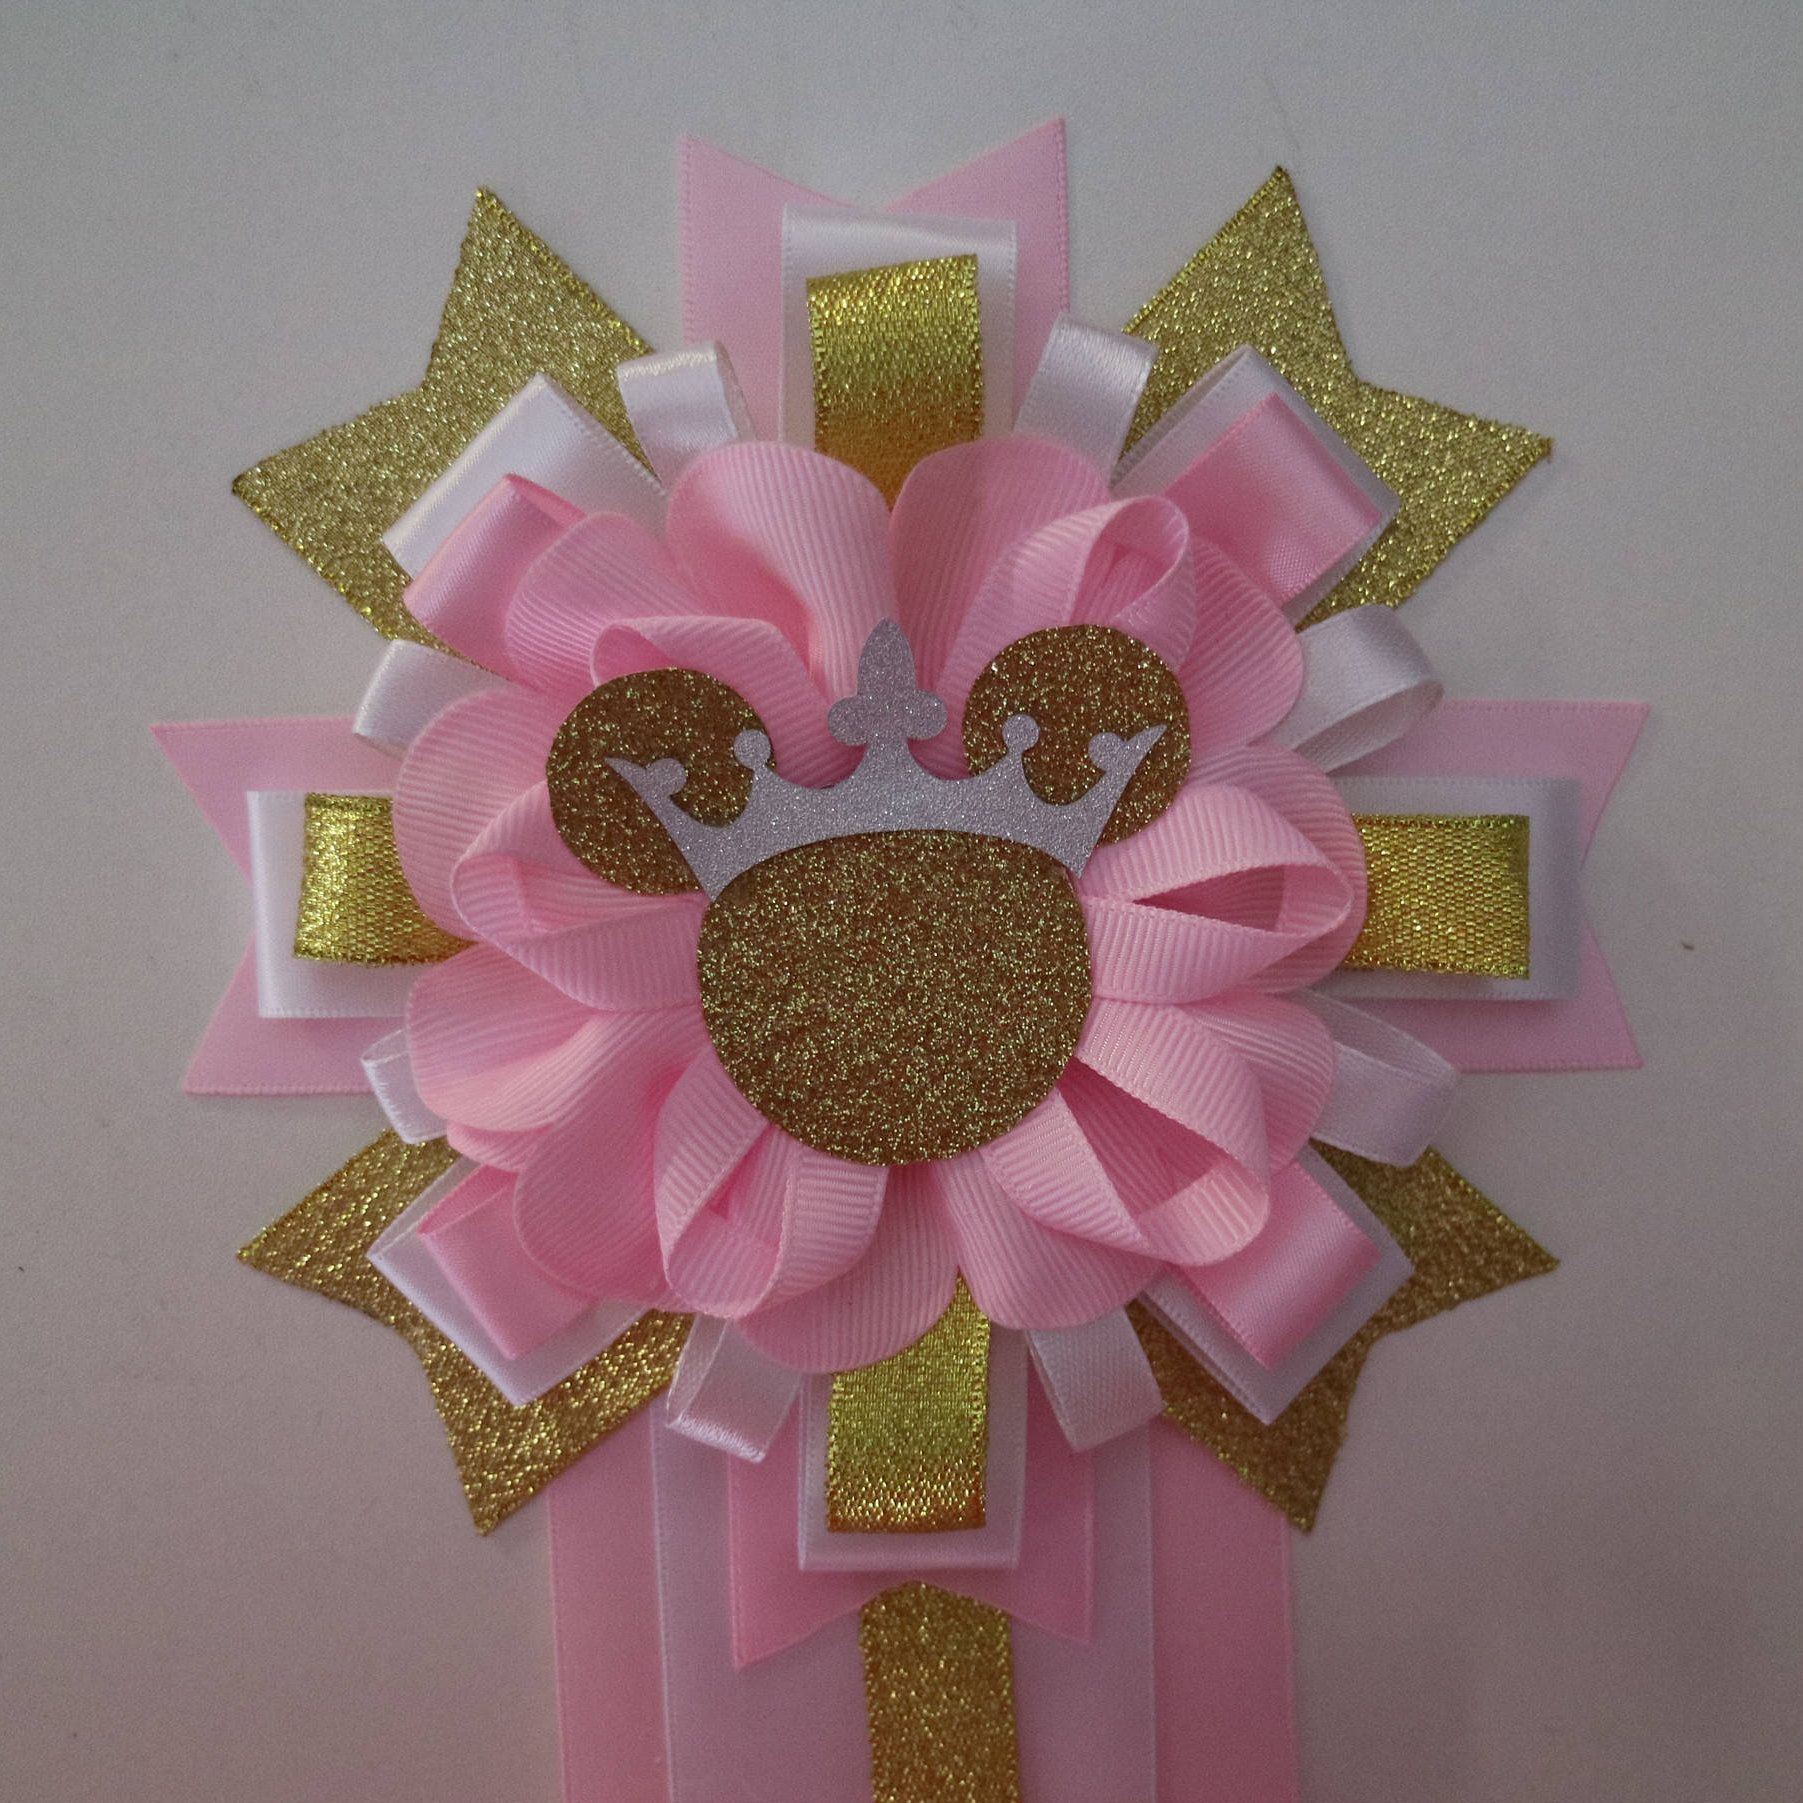 Minnie Mouse Pink Gold Baby Shower Mommy To Be Corsage By Yeseniacouture On Etsy Pink Gold Baby Shower Gold Baby Showers Minnie Mouse Pink